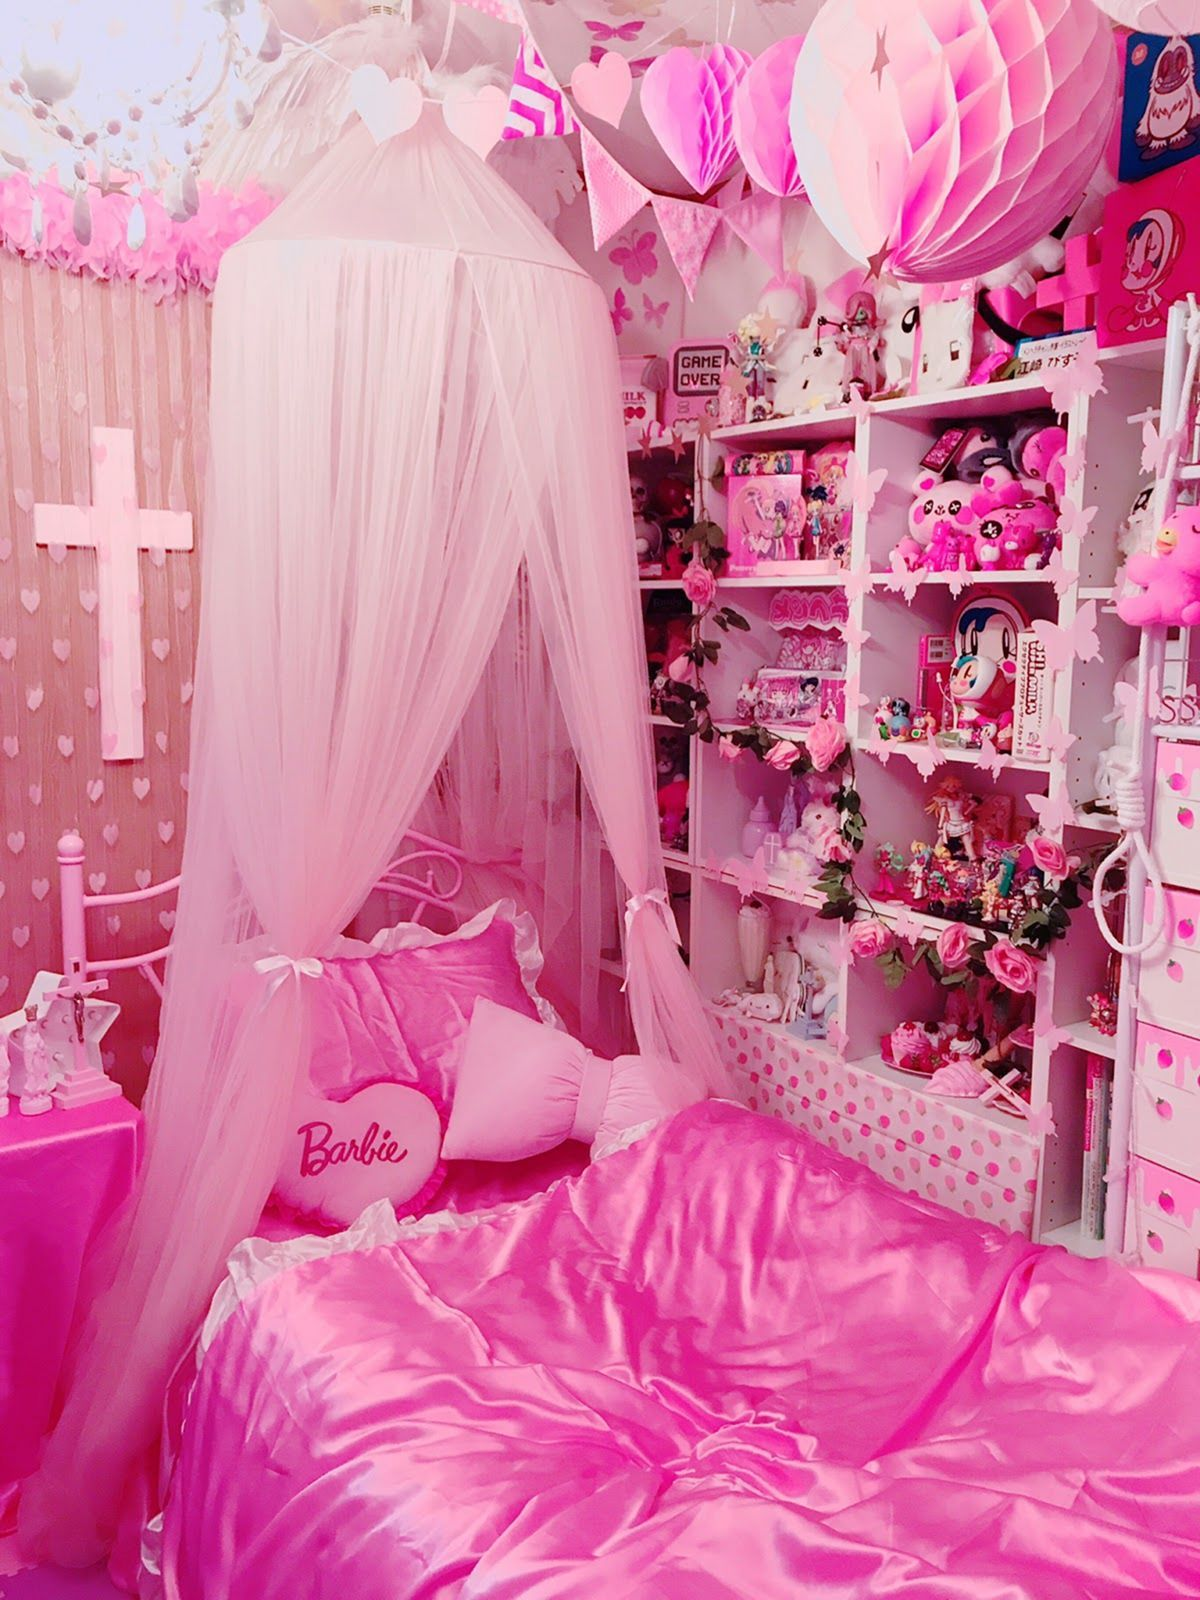 10 Aesthetic Pink Girl Bedroom Design And Decor Ideas Pink Bedroom For Girls Pink Bedroom Design Girl Bedroom Designs